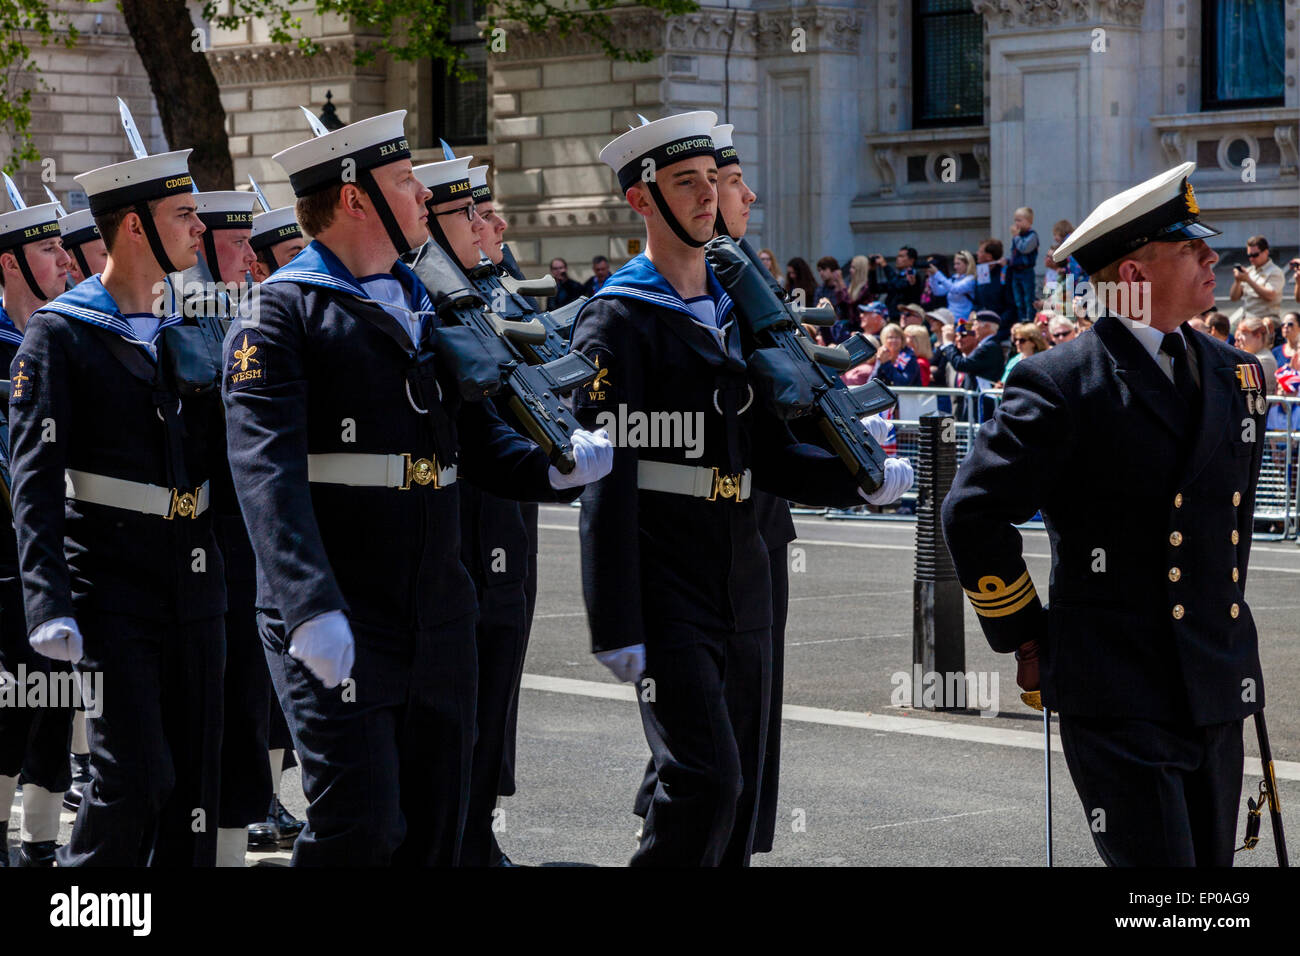 A Service Attachment Of The Royal Navy March Past The Cenotaph War Memorial On The 70th Anniversary Of VE Day, London, - Stock Image